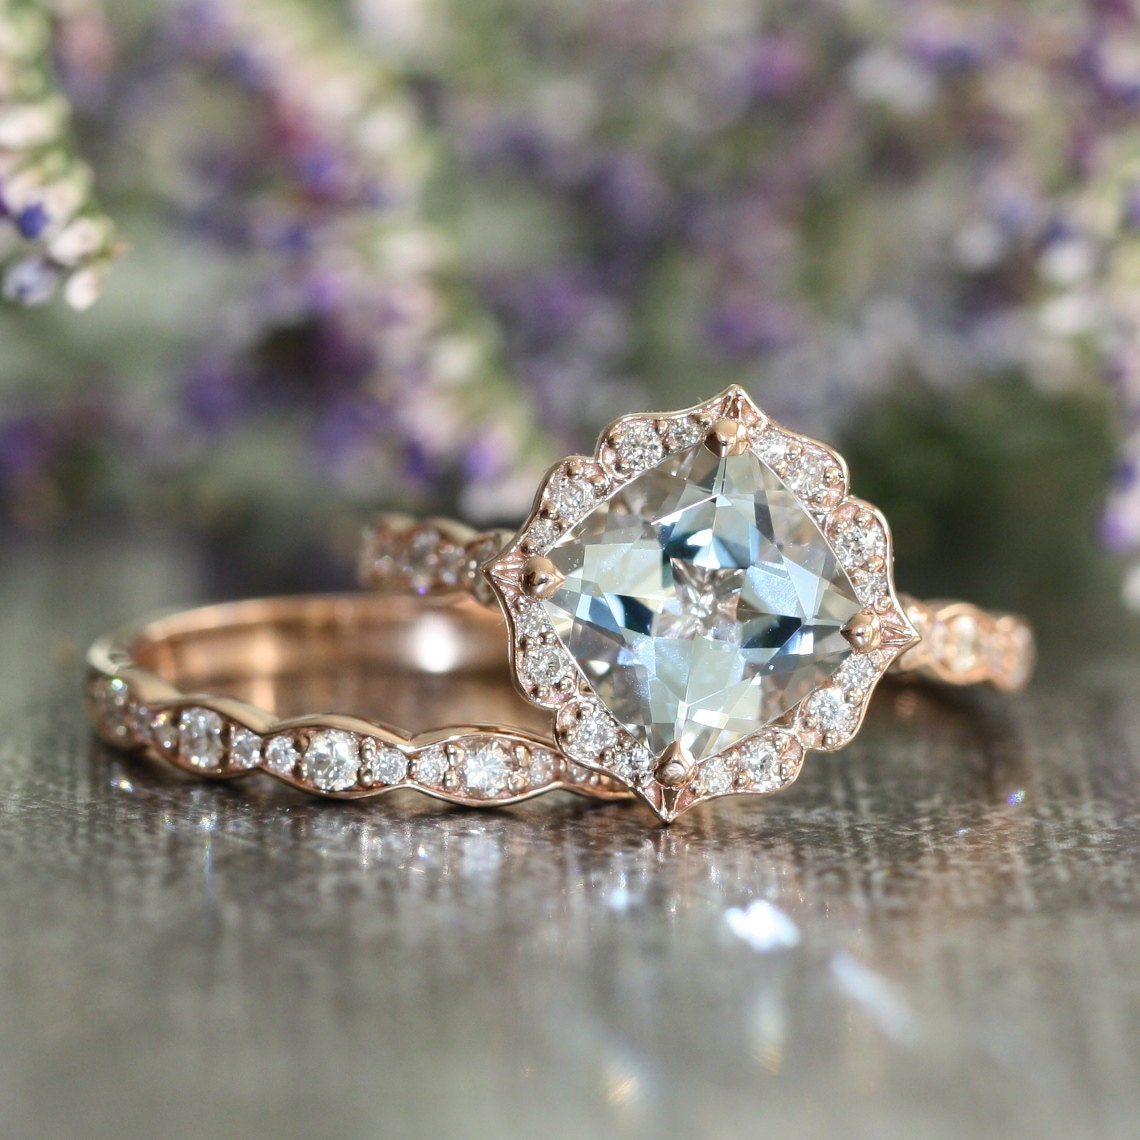 Vintage floral aquamarine engagement ring and by lamoredesign for Vintage sites like etsy